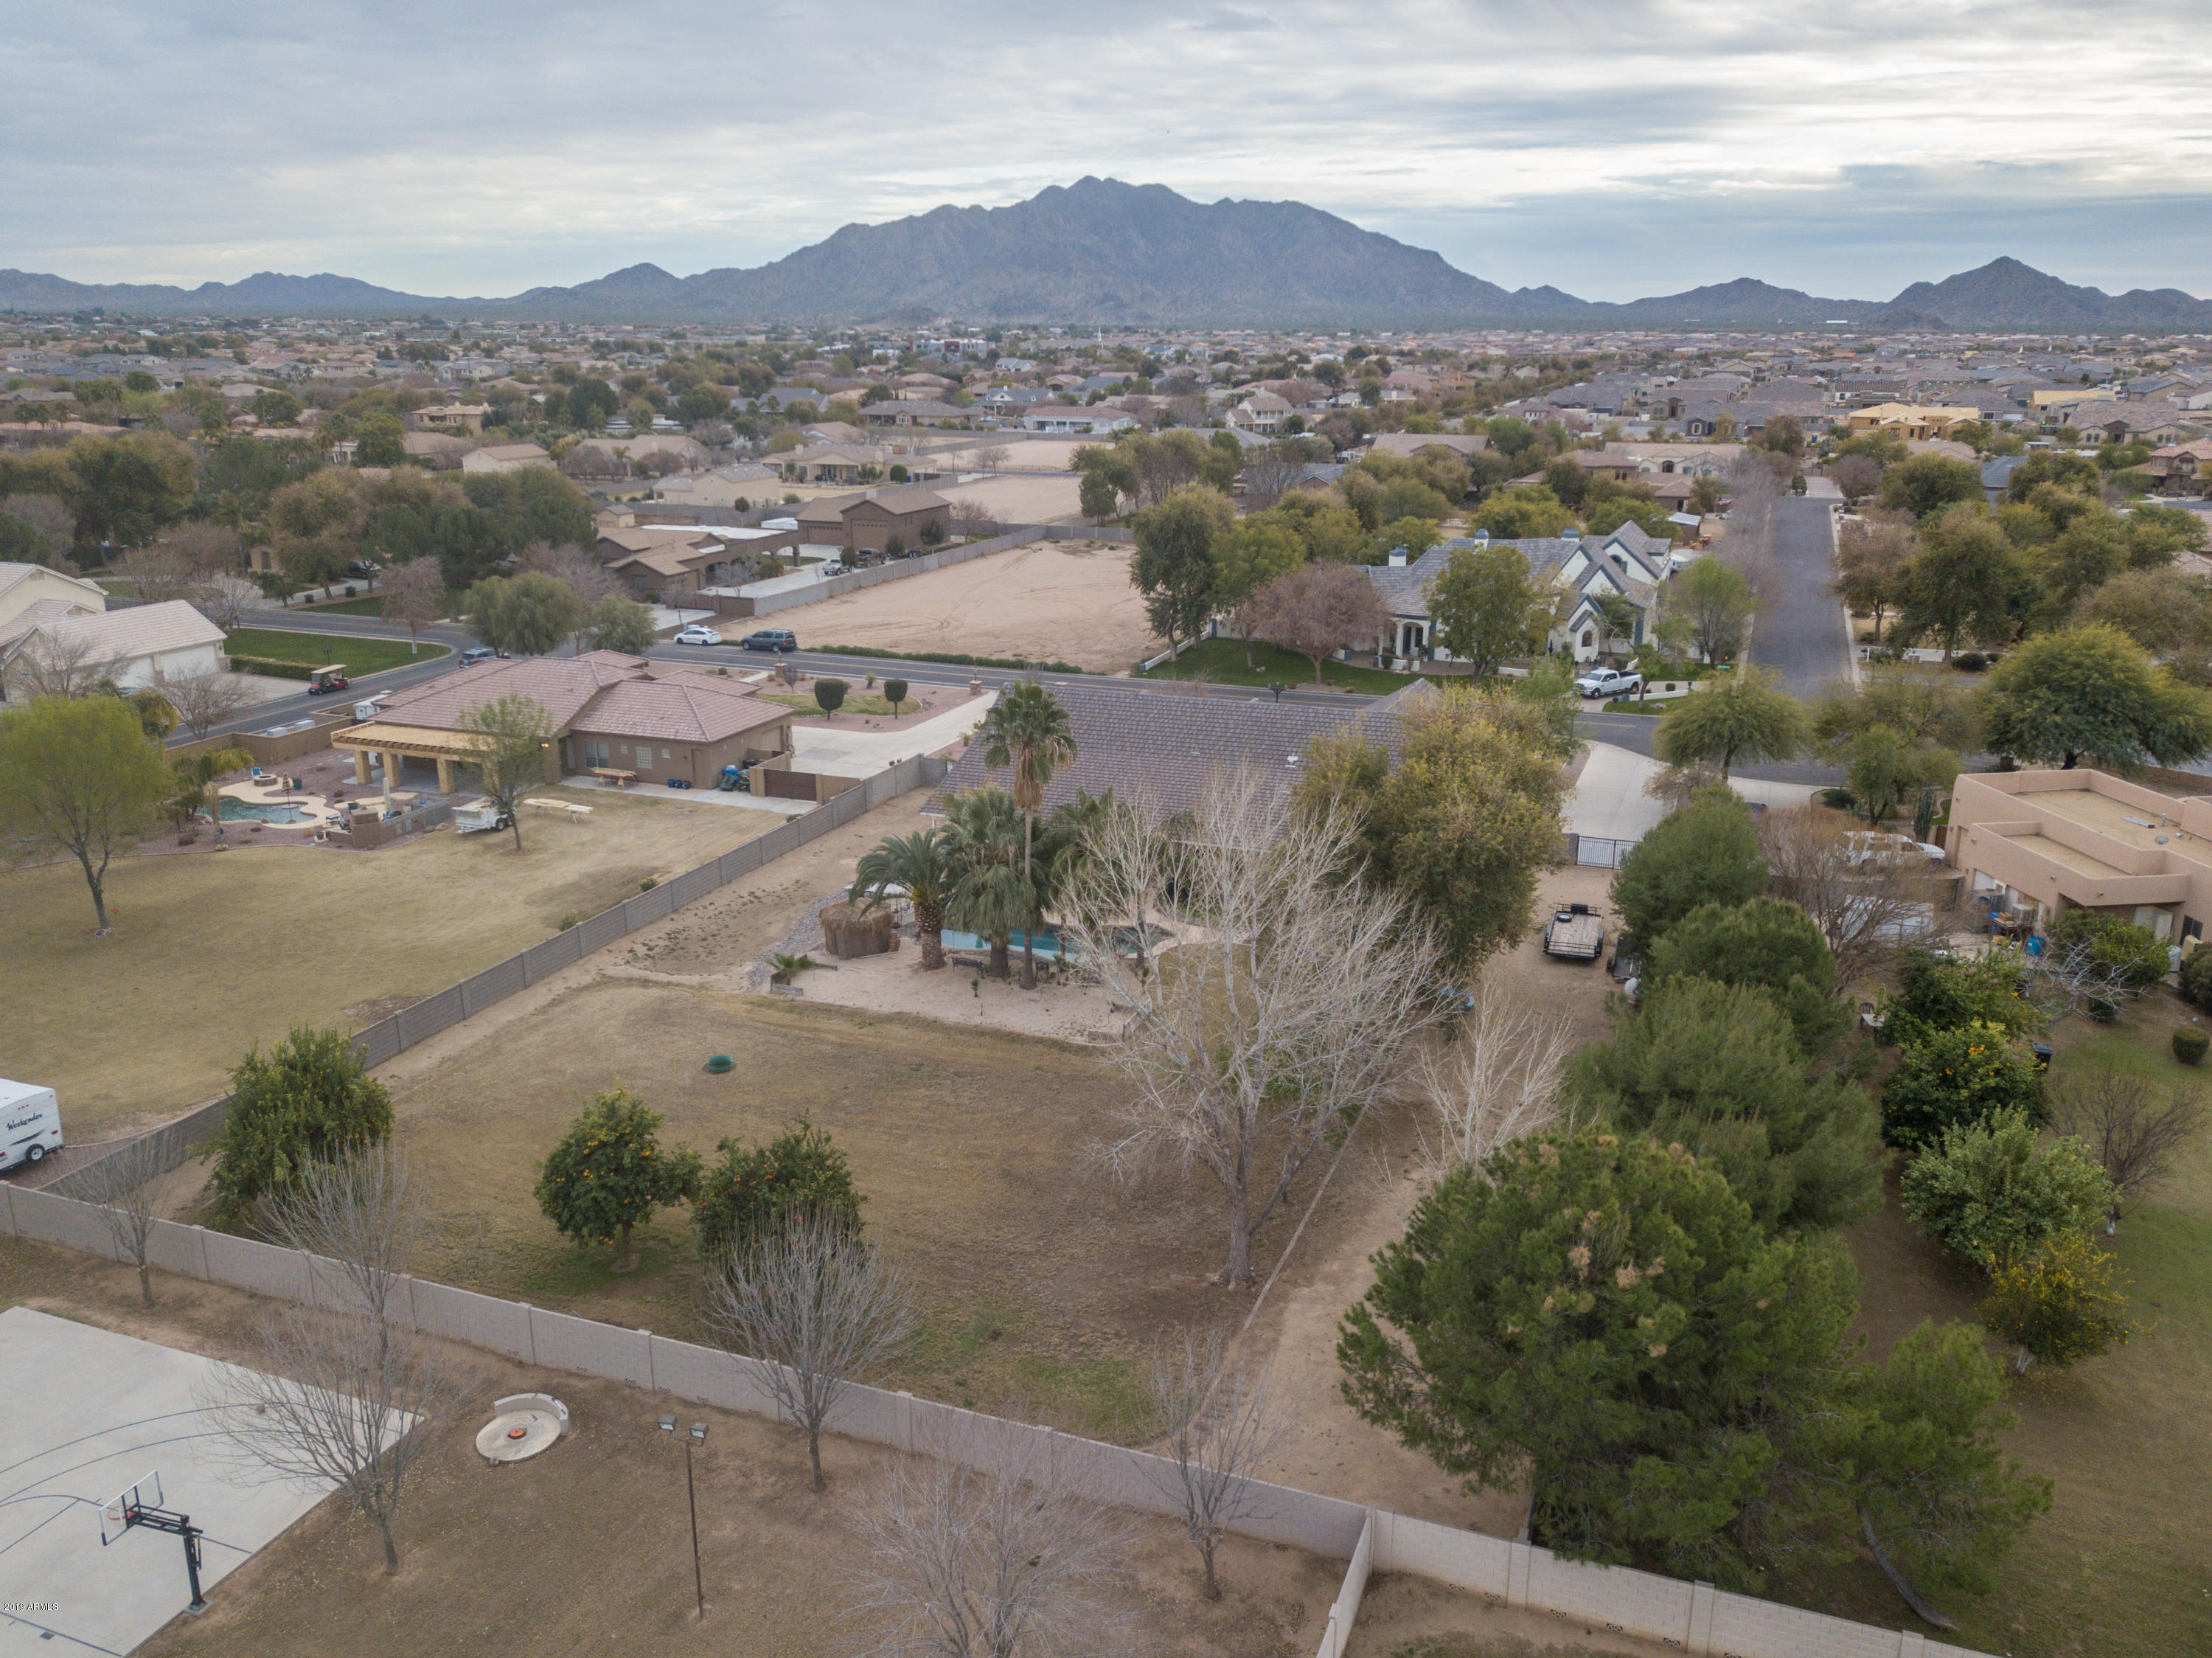 MLS 5877042 2564 E Via De Palmas --, Gilbert, AZ 85298 Gilbert AZ Greenfield Acres